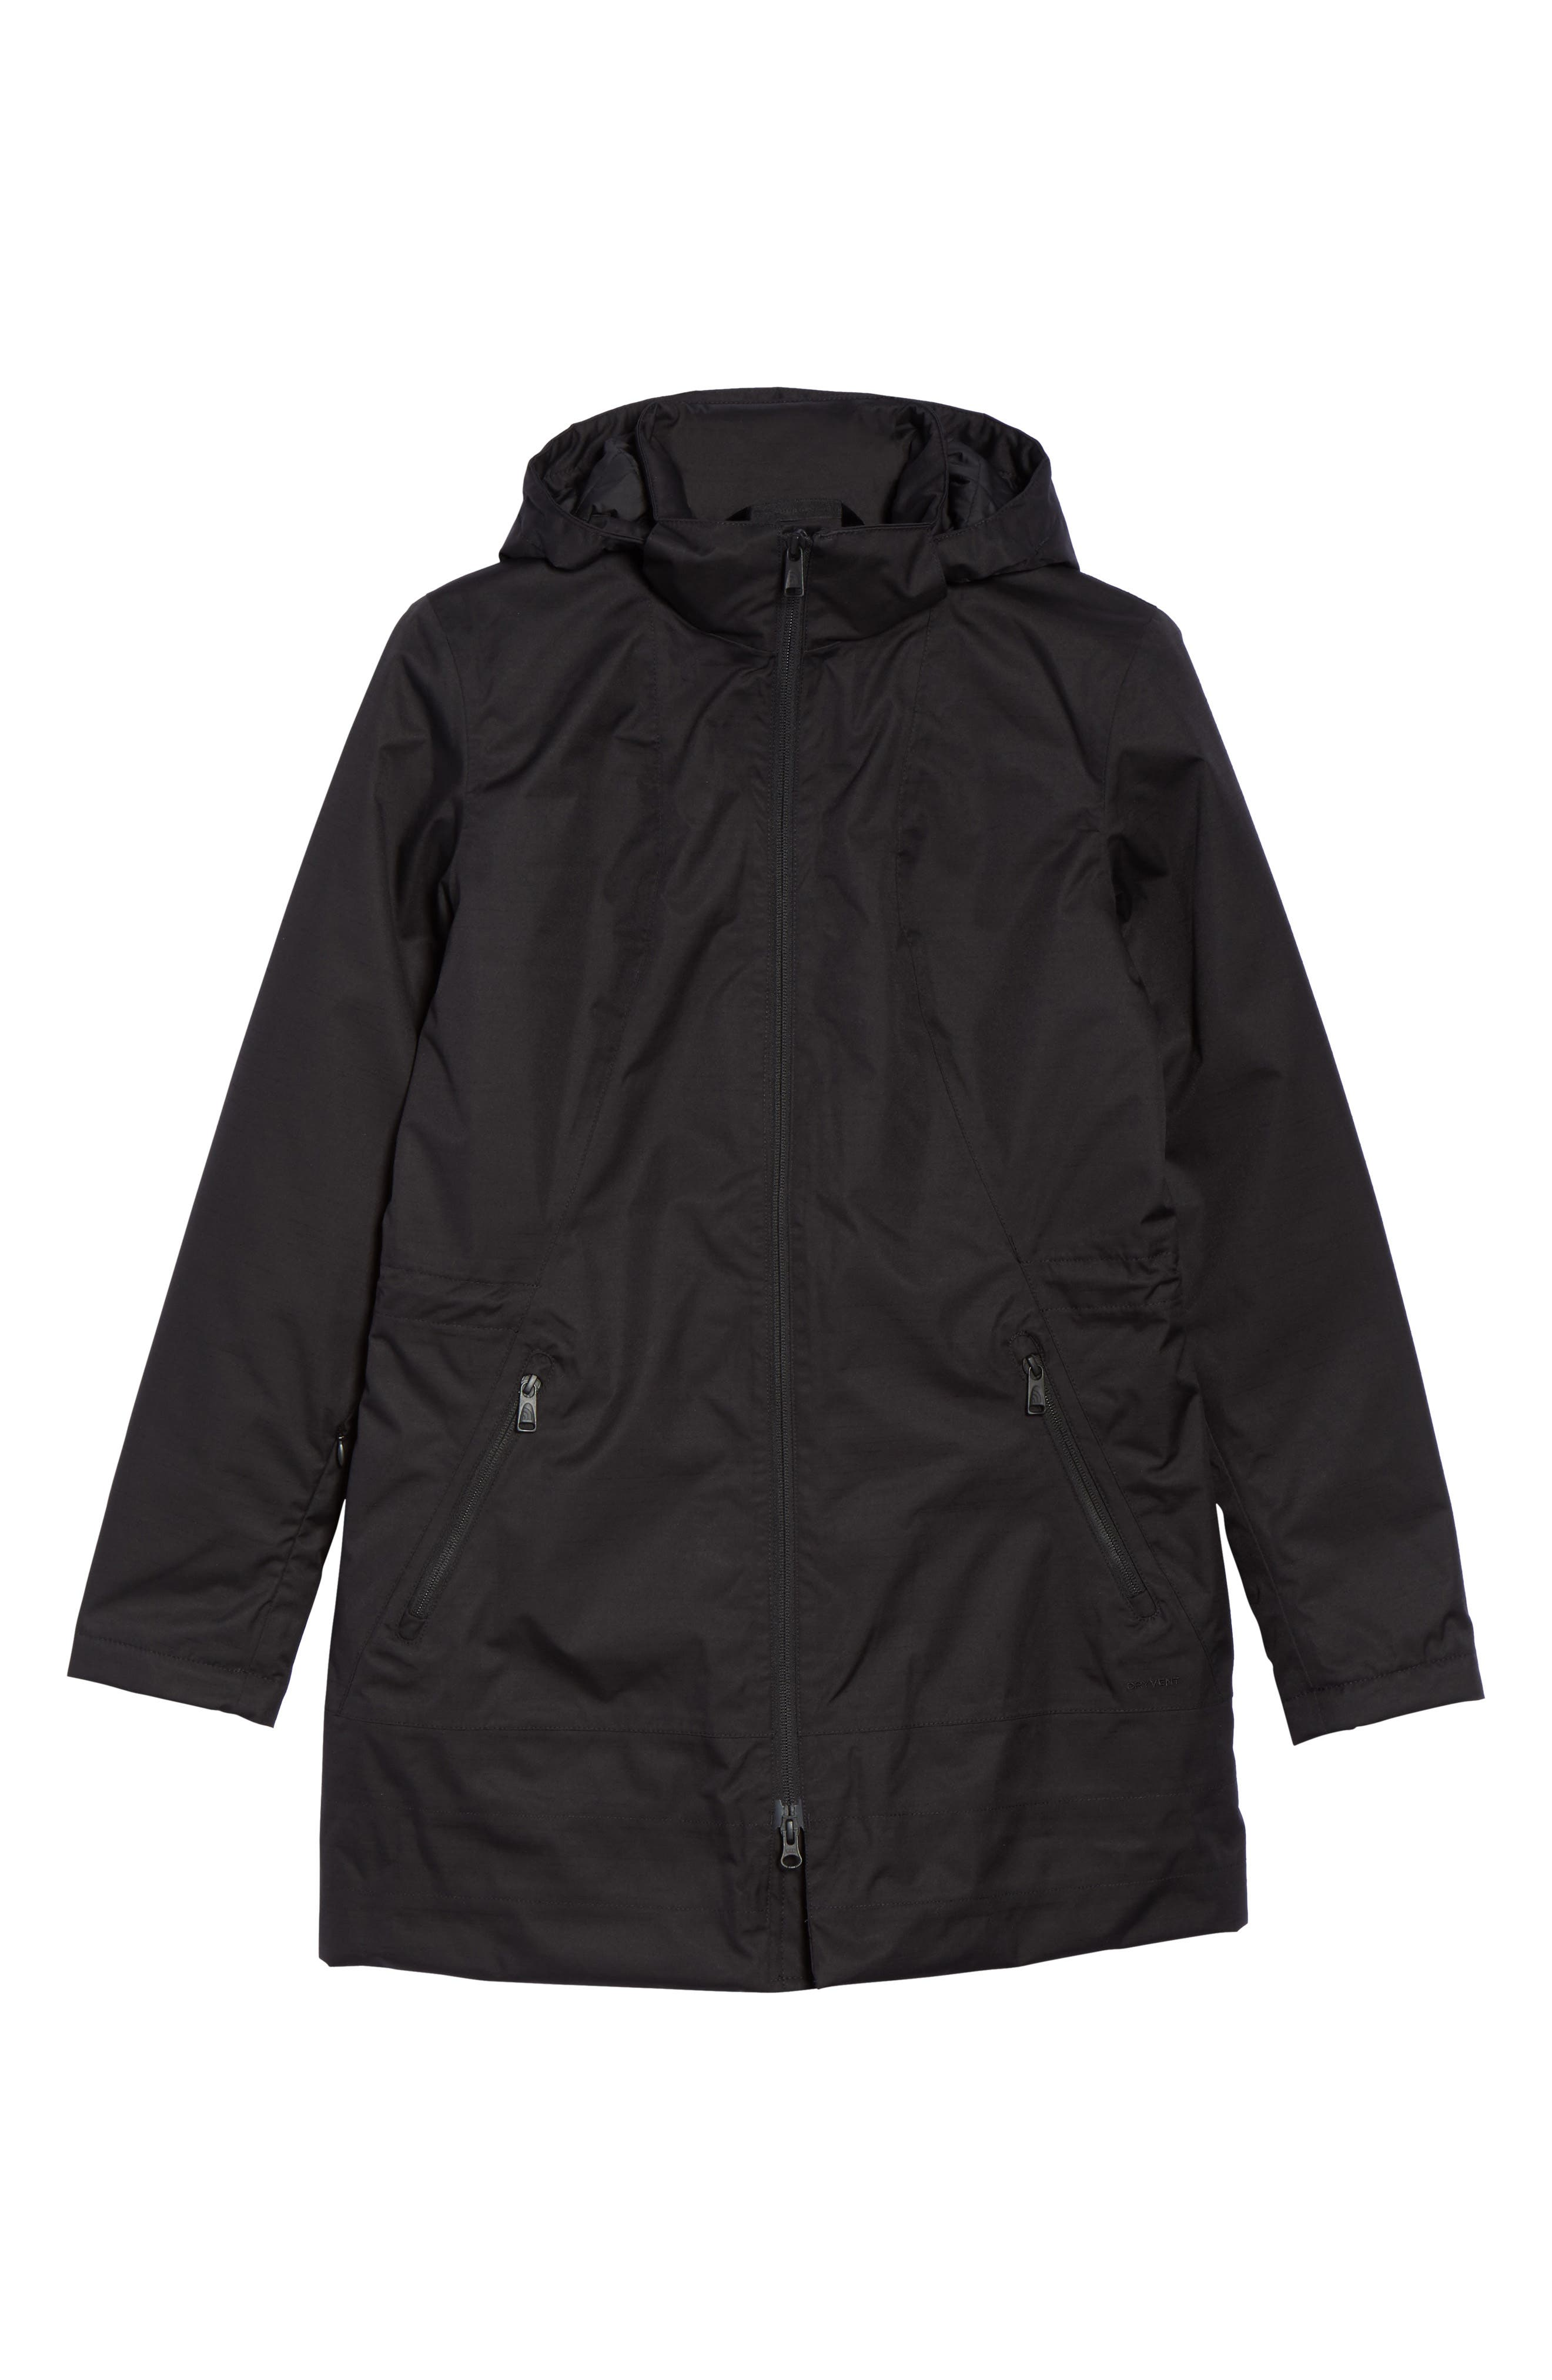 Alternate Image 1 Selected - The North Face 'Ancha' Hooded Waterproof Parka